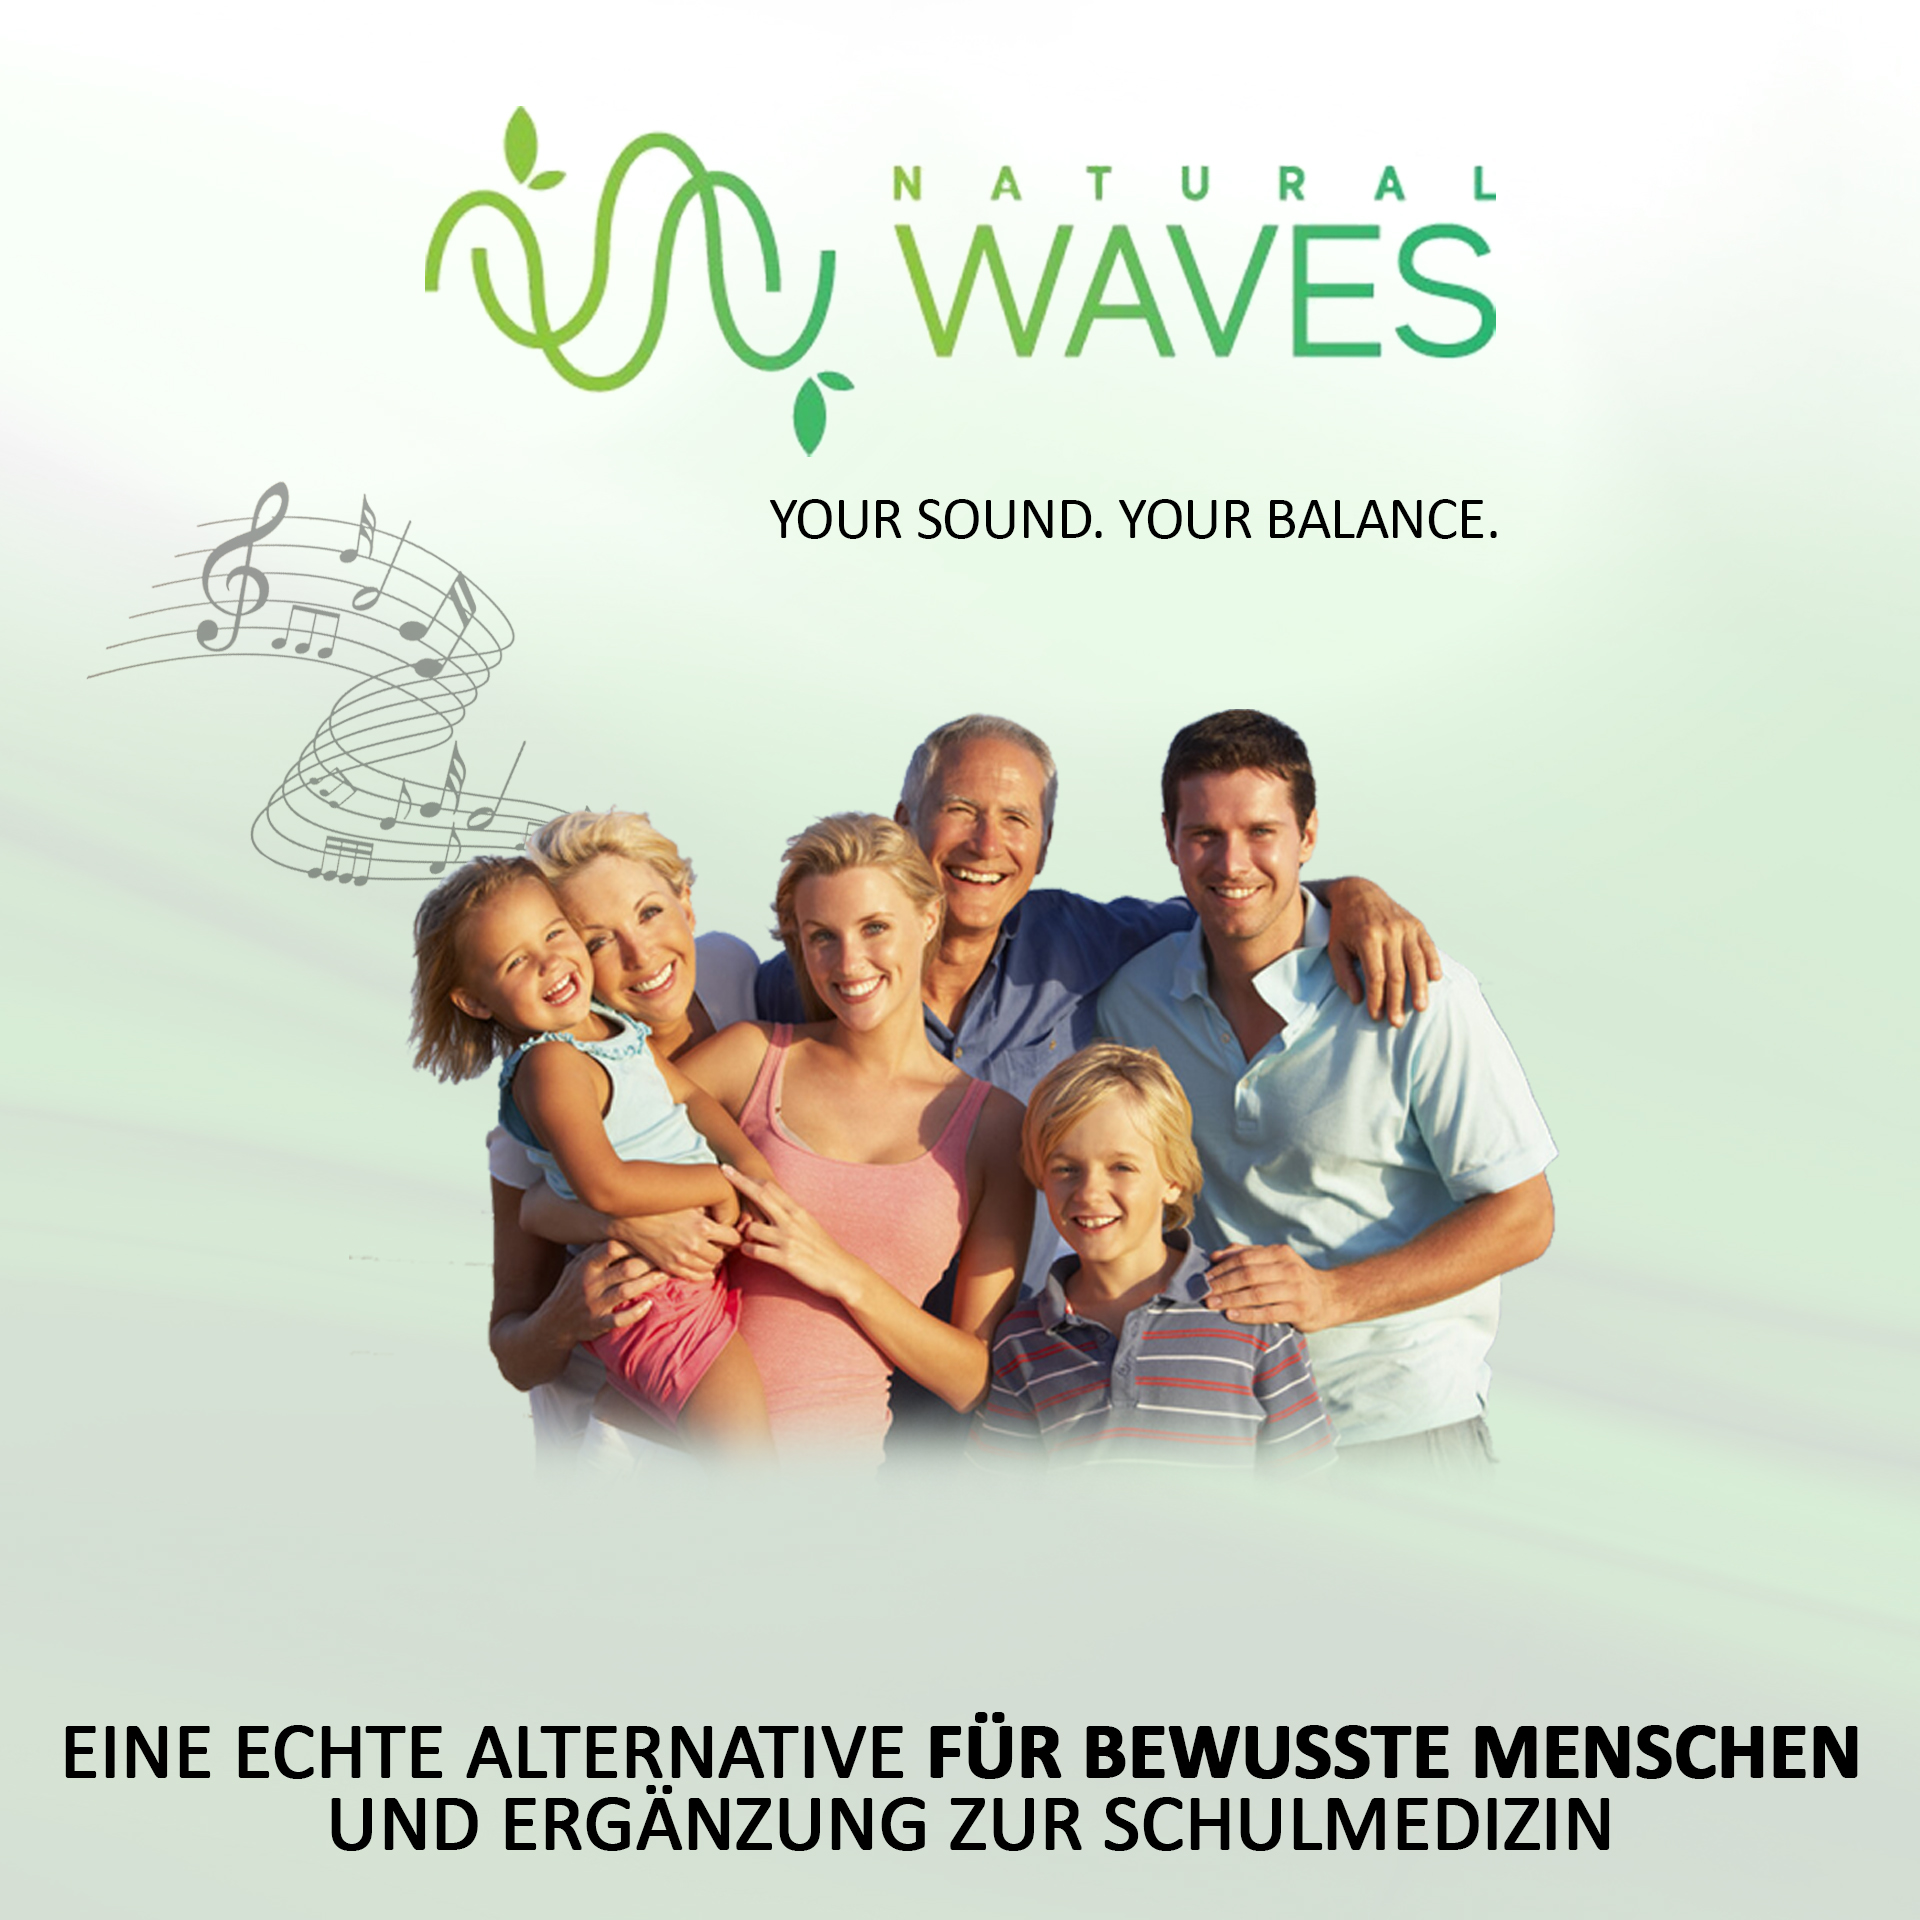 NaturaWaves - Your Sound. Your Balance.